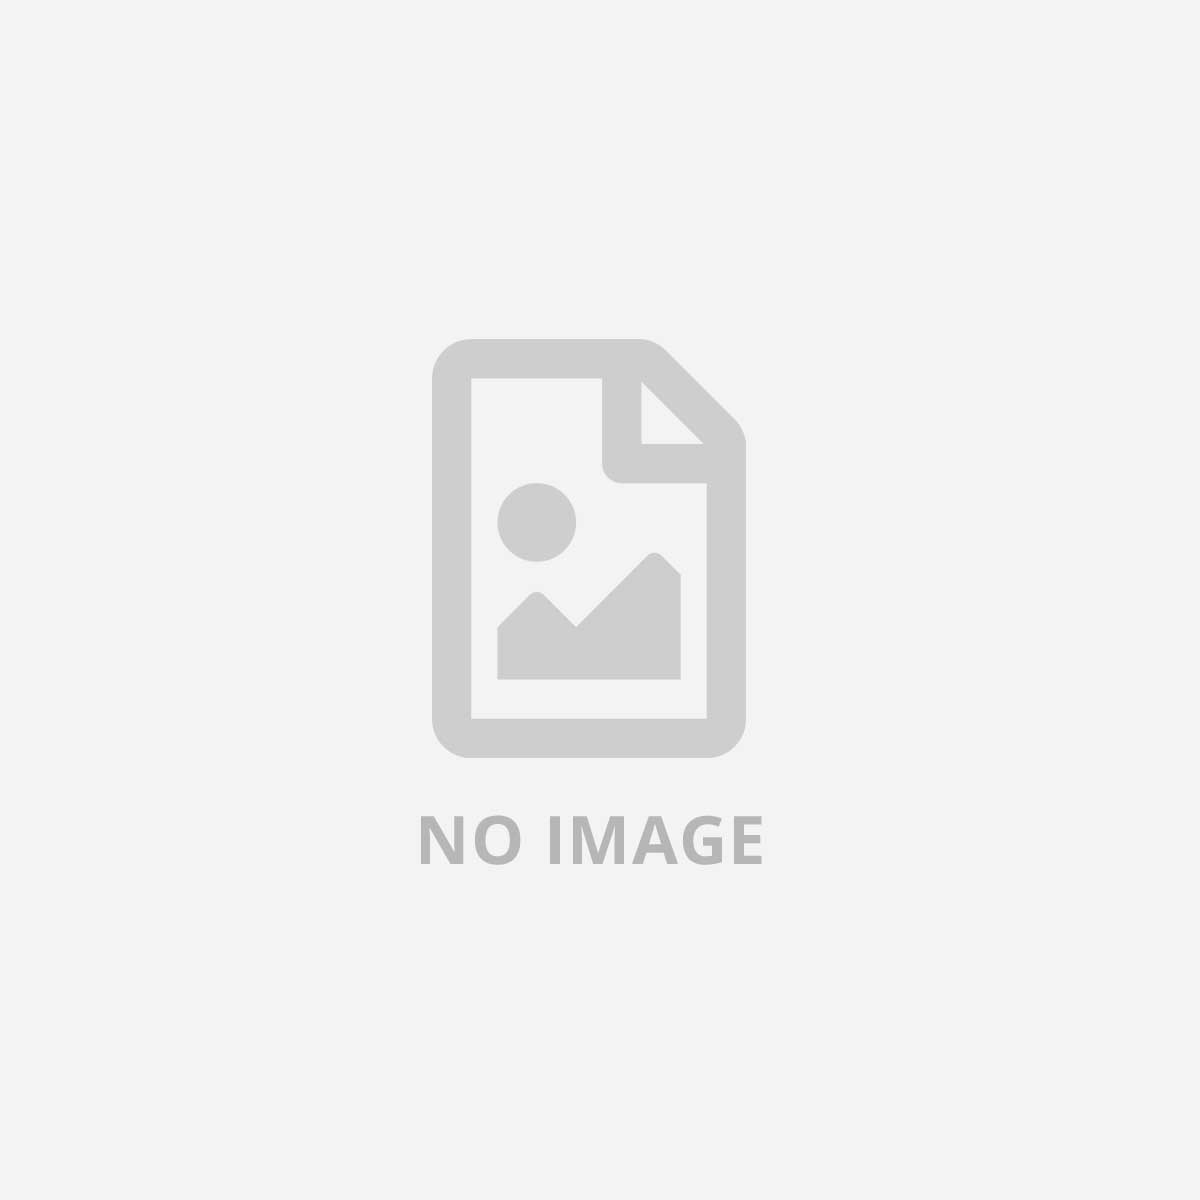 DELL _ EMC POWEREDGE R340 16 GB